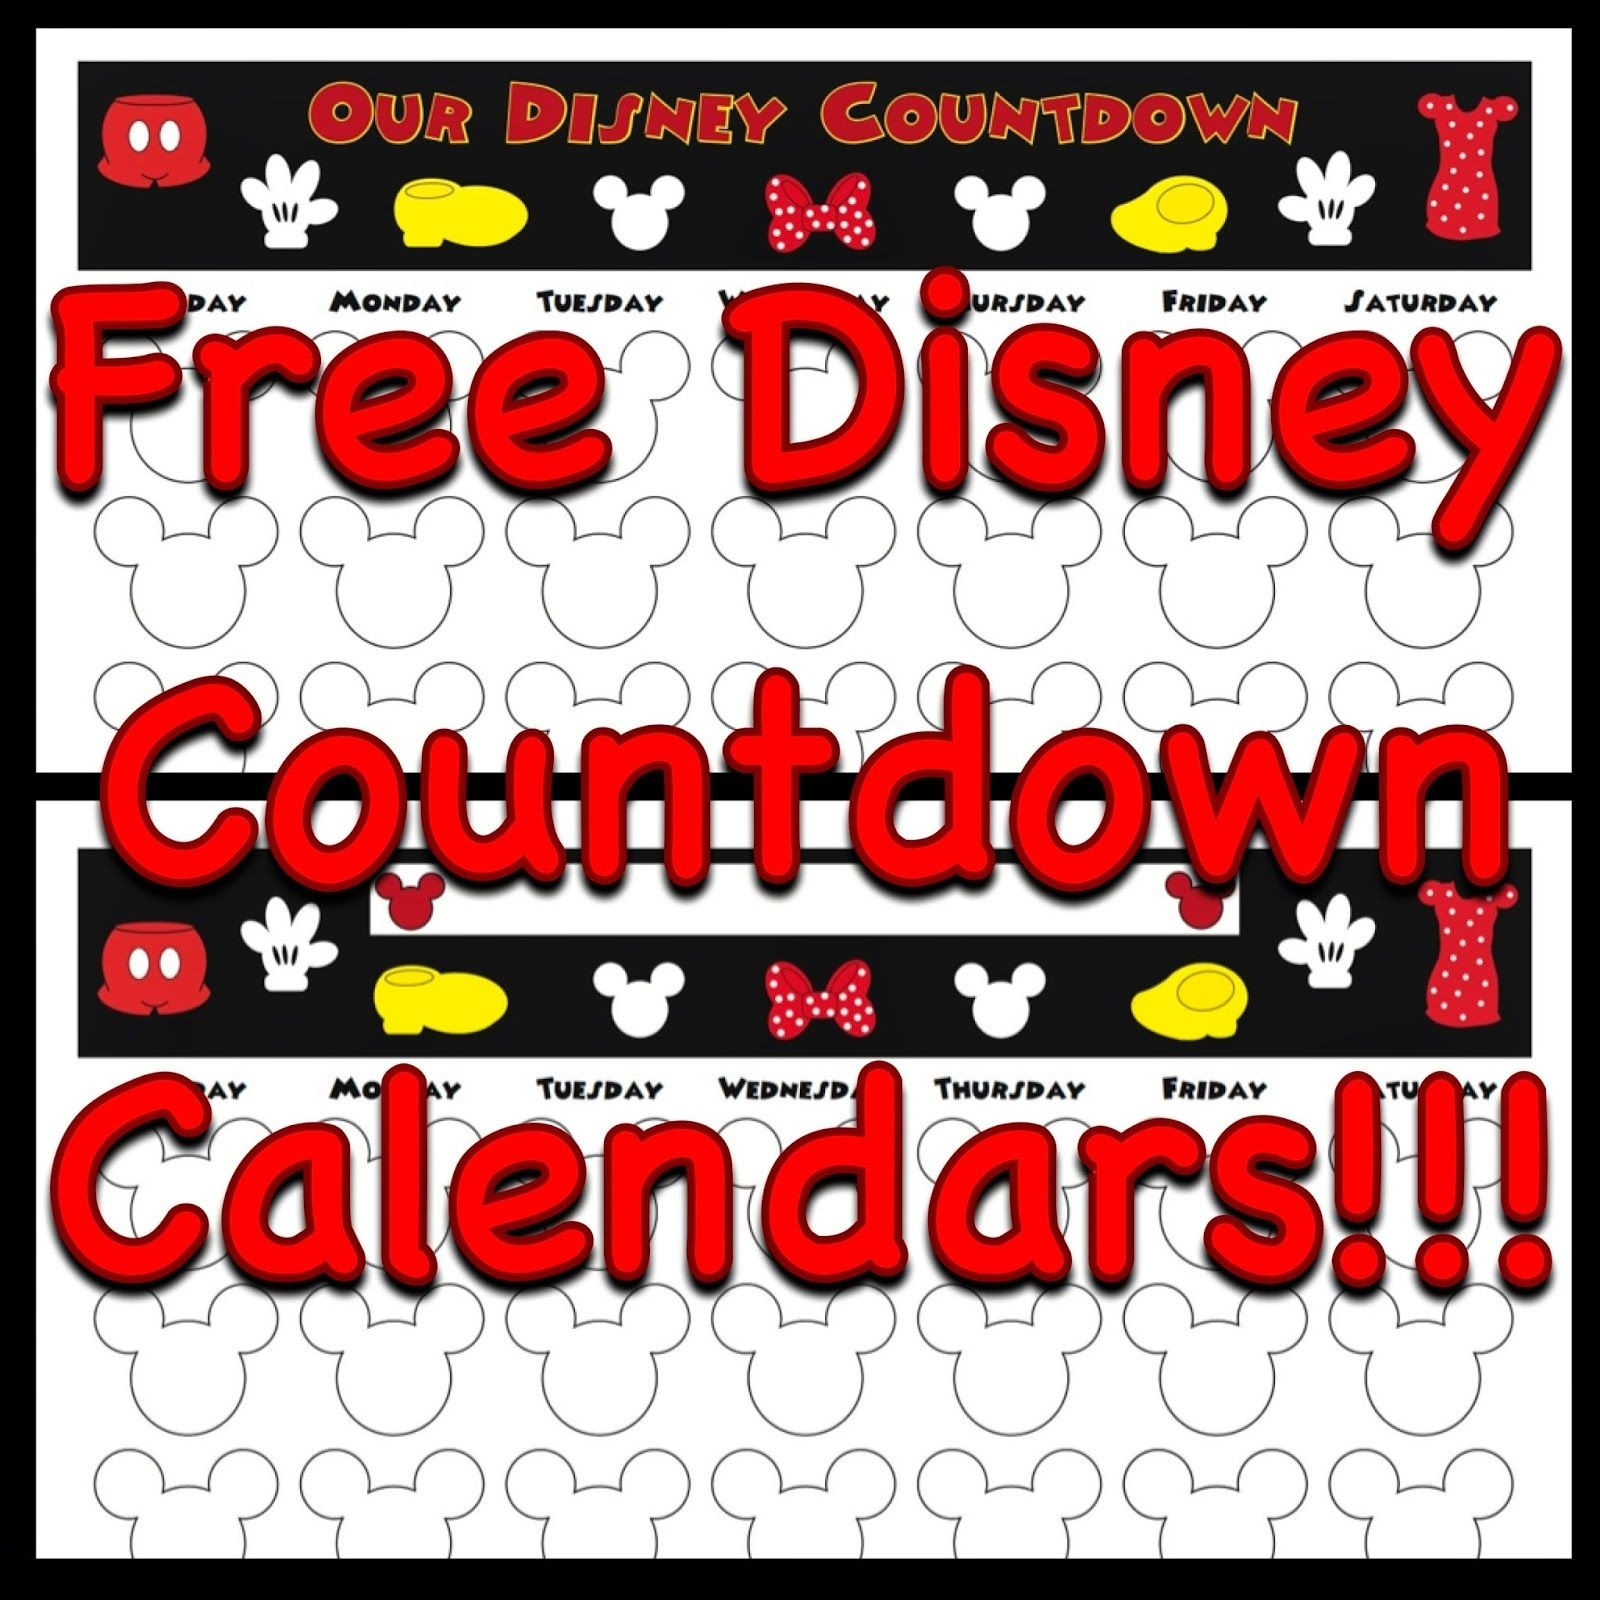 Pin By Dawn Aronhalt On Disney | Pinterest | Disney Countdown Disney Countdown Calendar Uk